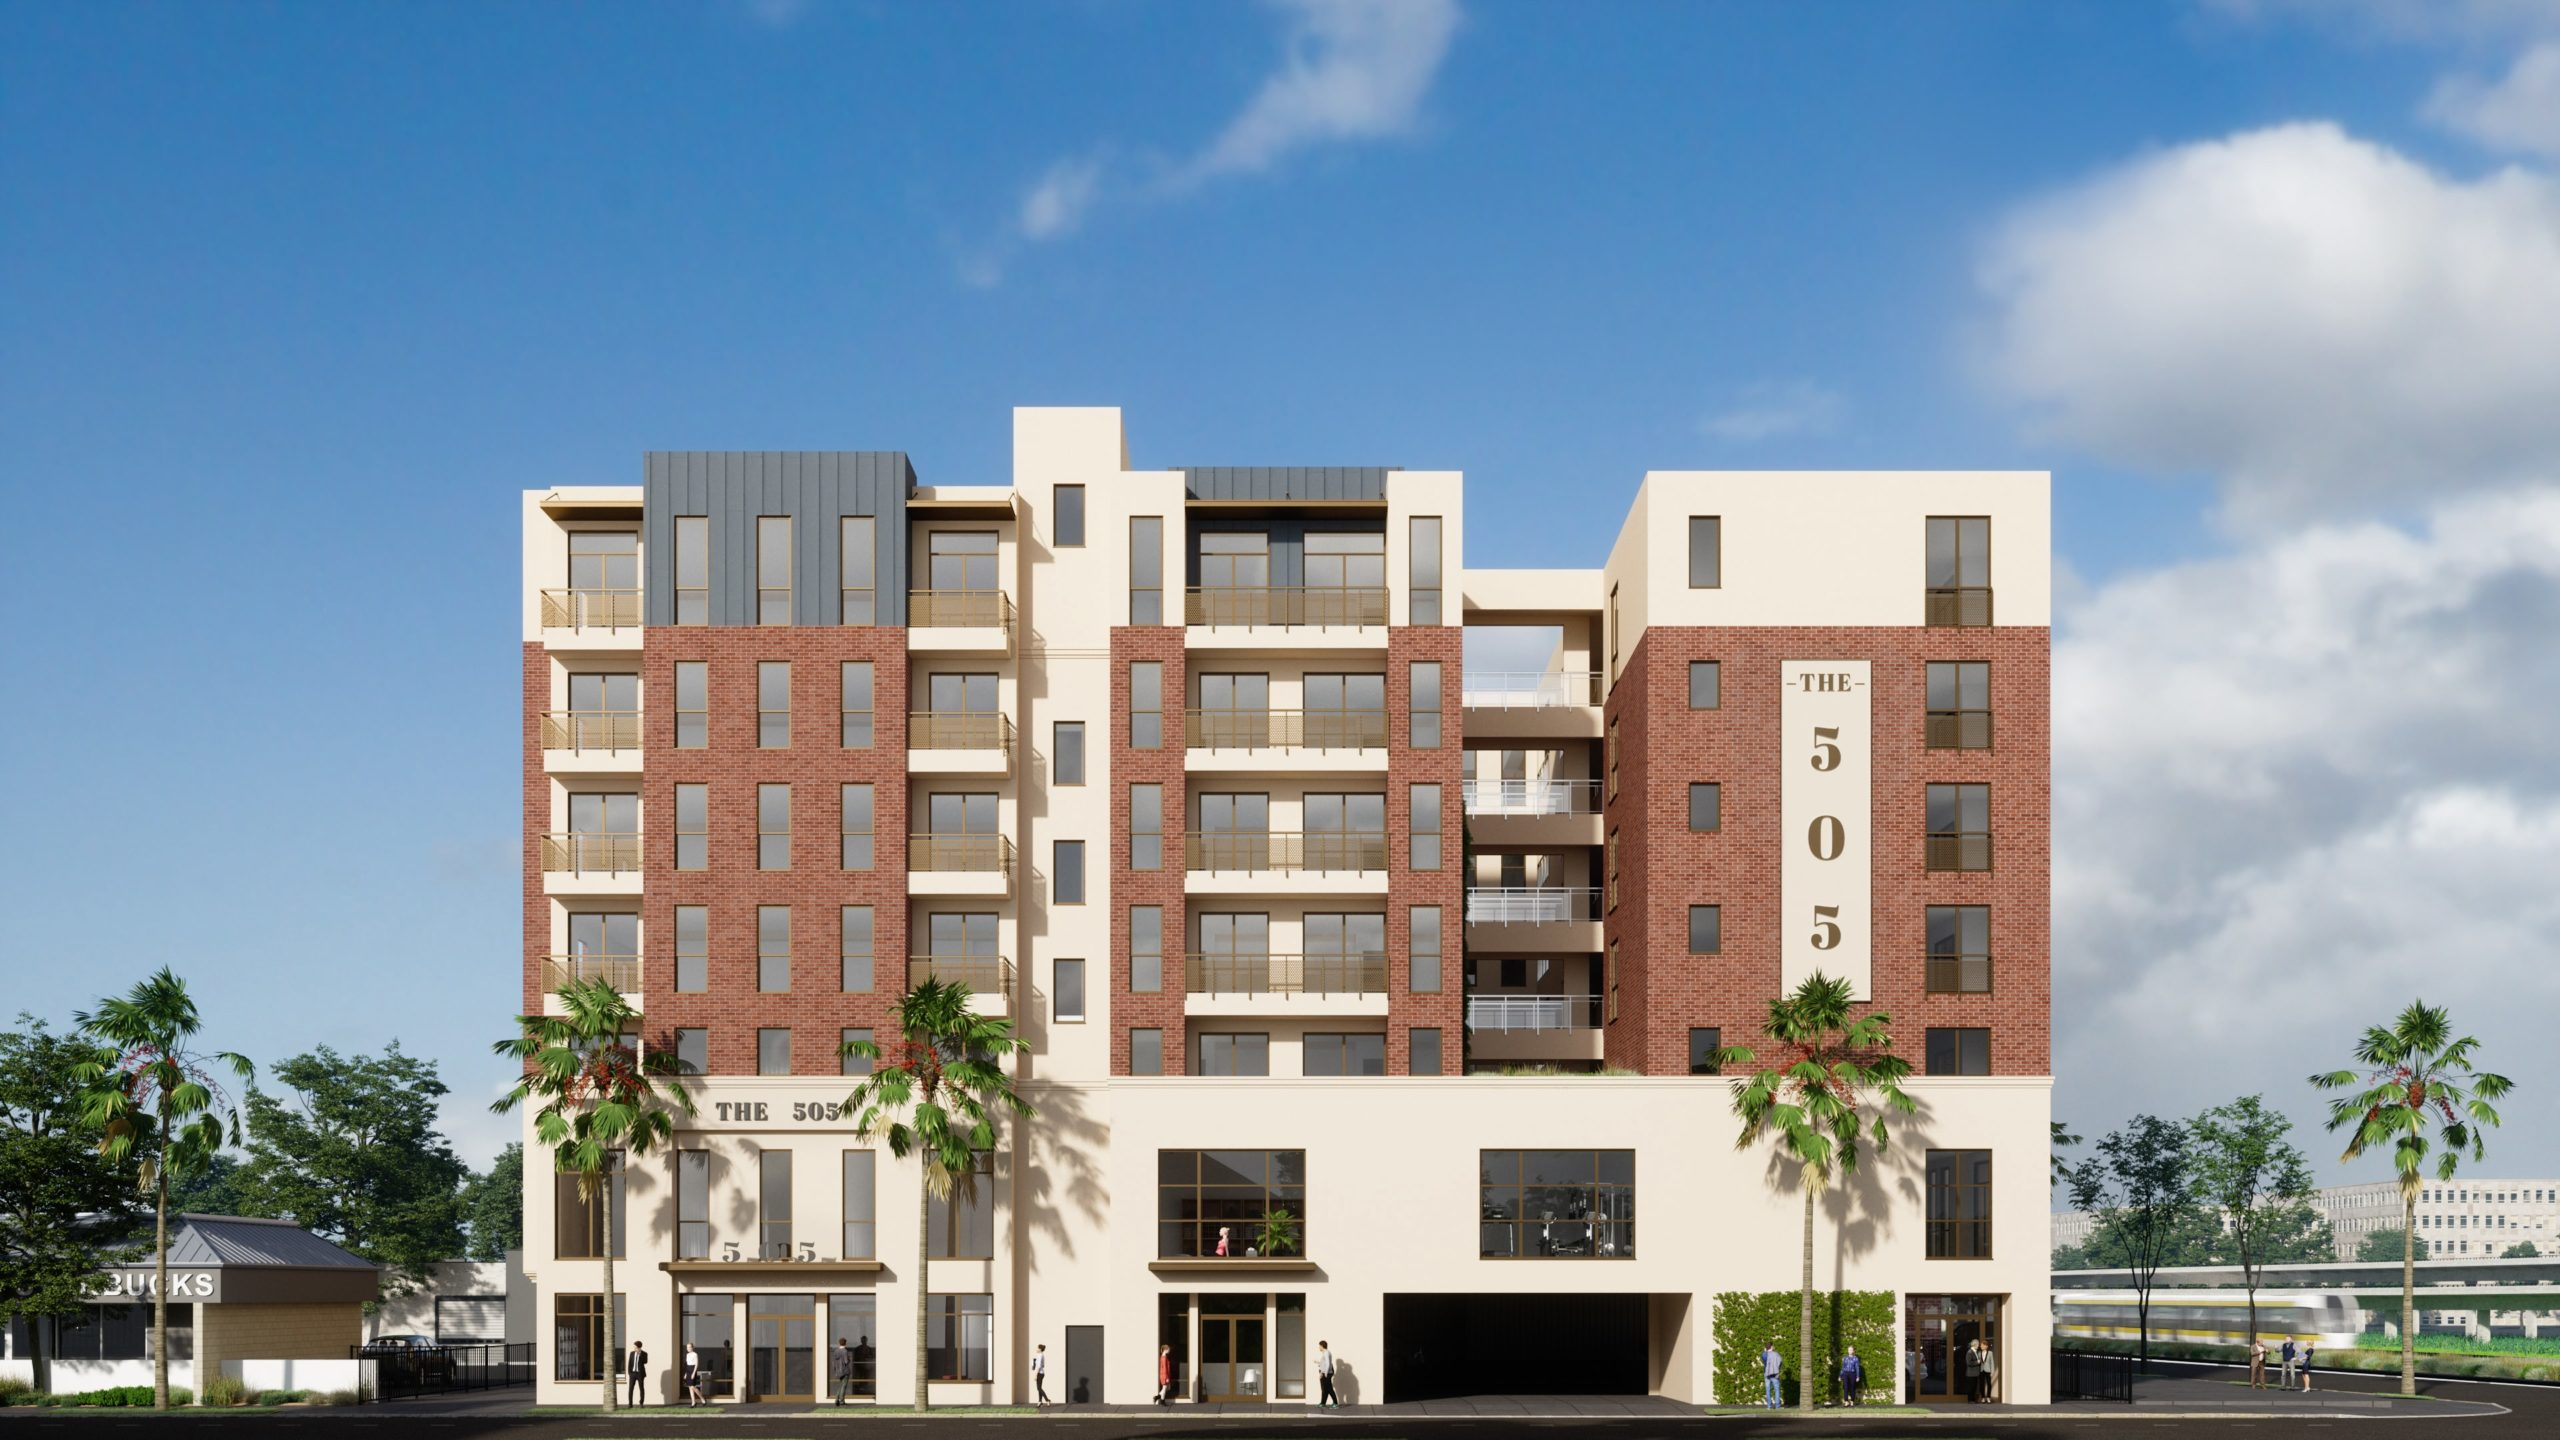 outdoor rendering of apartment complex with bullet train, and tropical landscaping